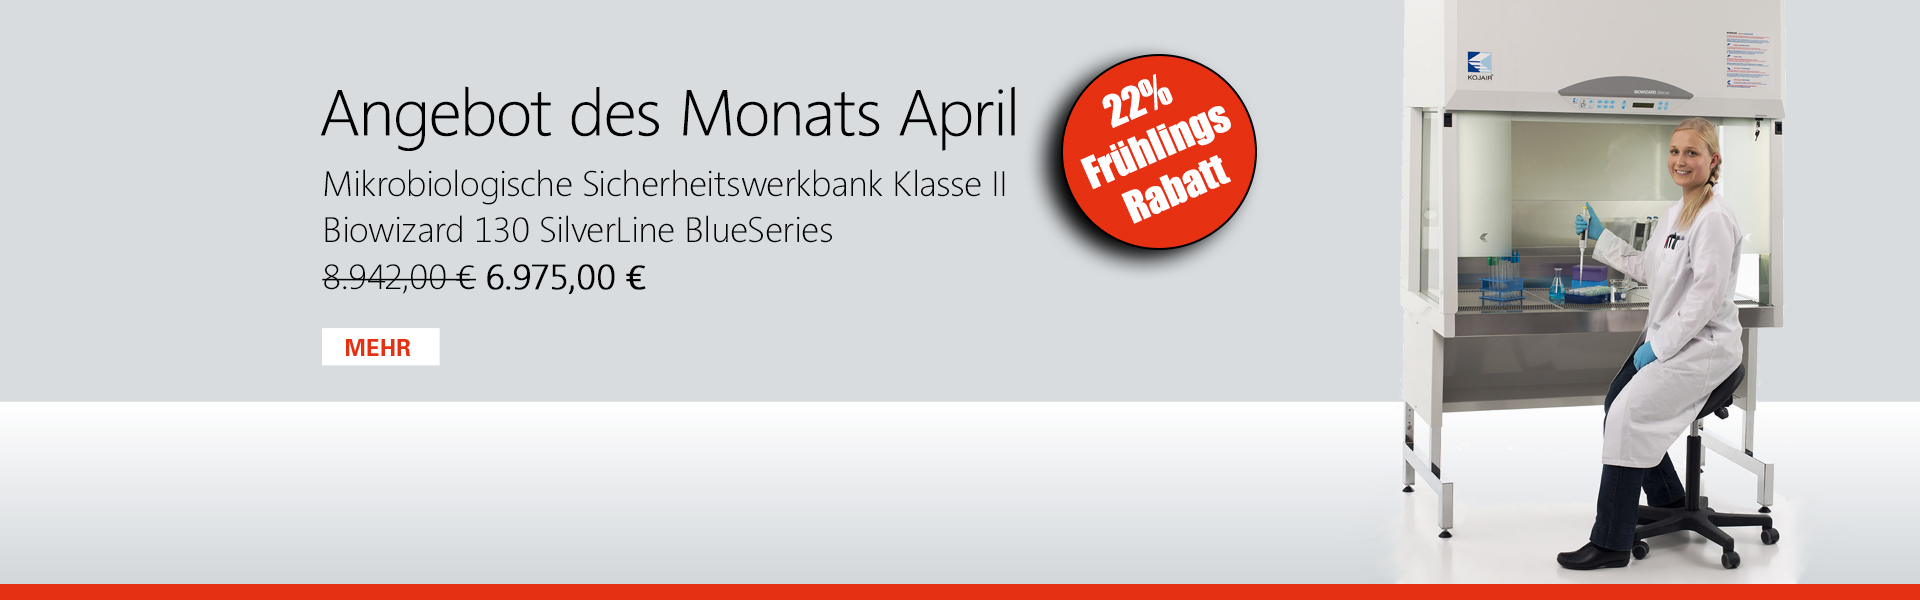 angebot_april